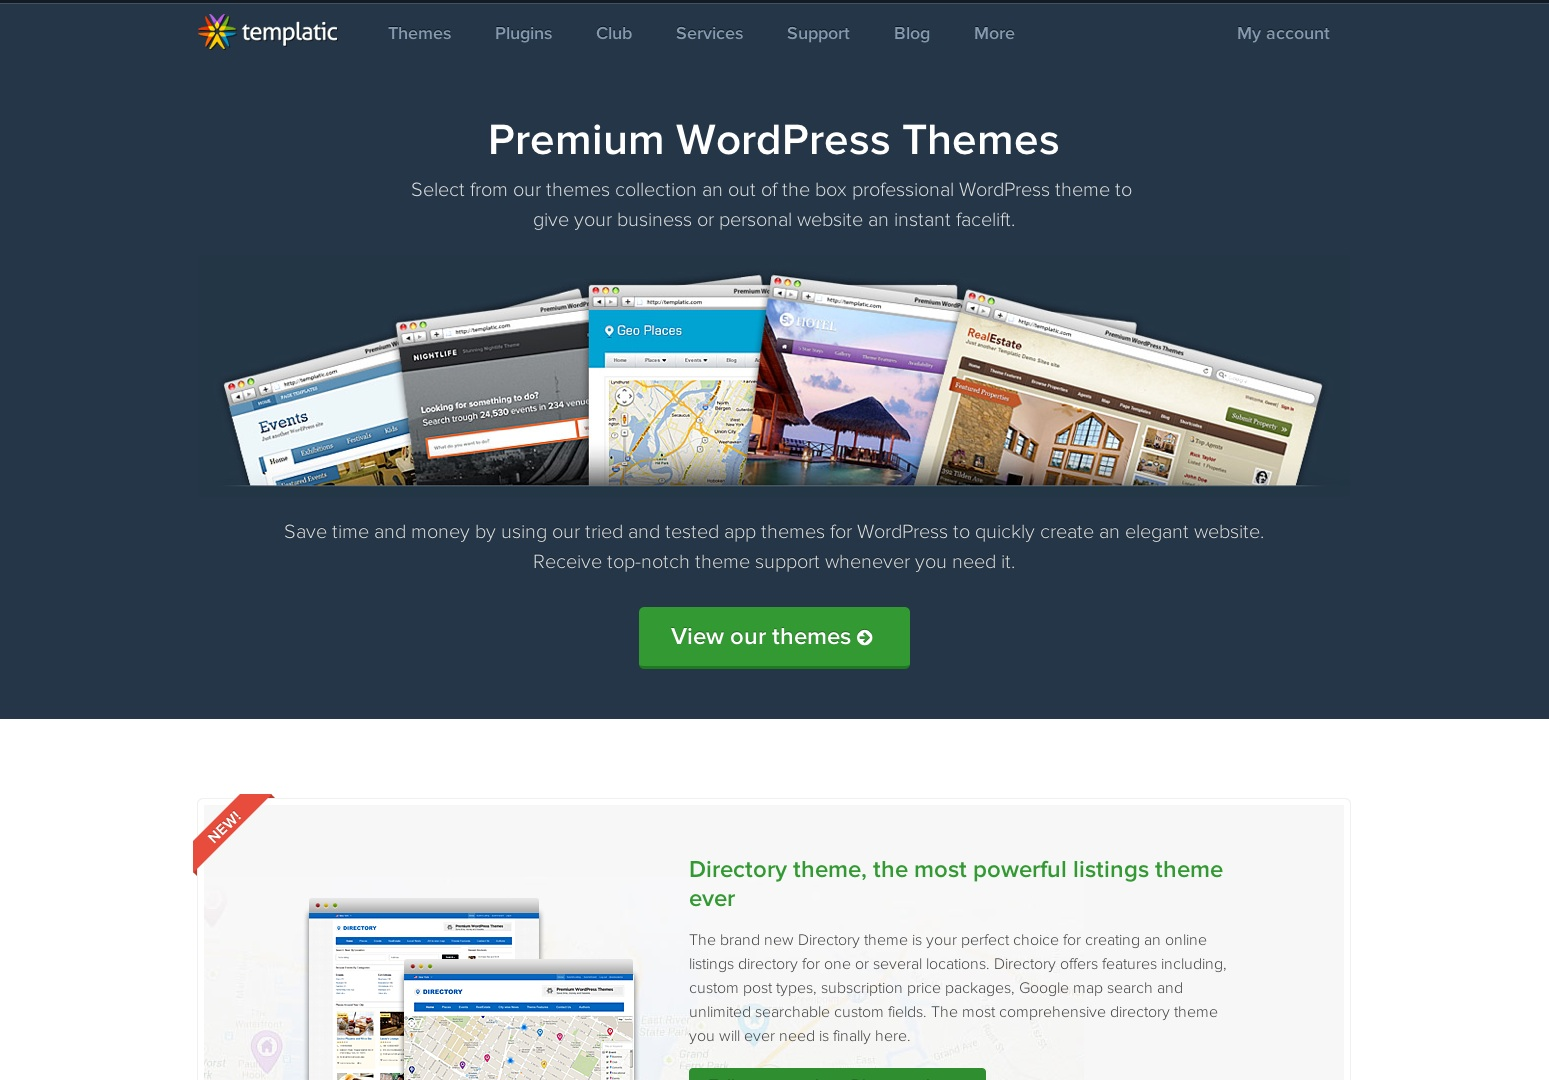 Premium WordPress Themes | Templatic - App Themes | Directory Themes